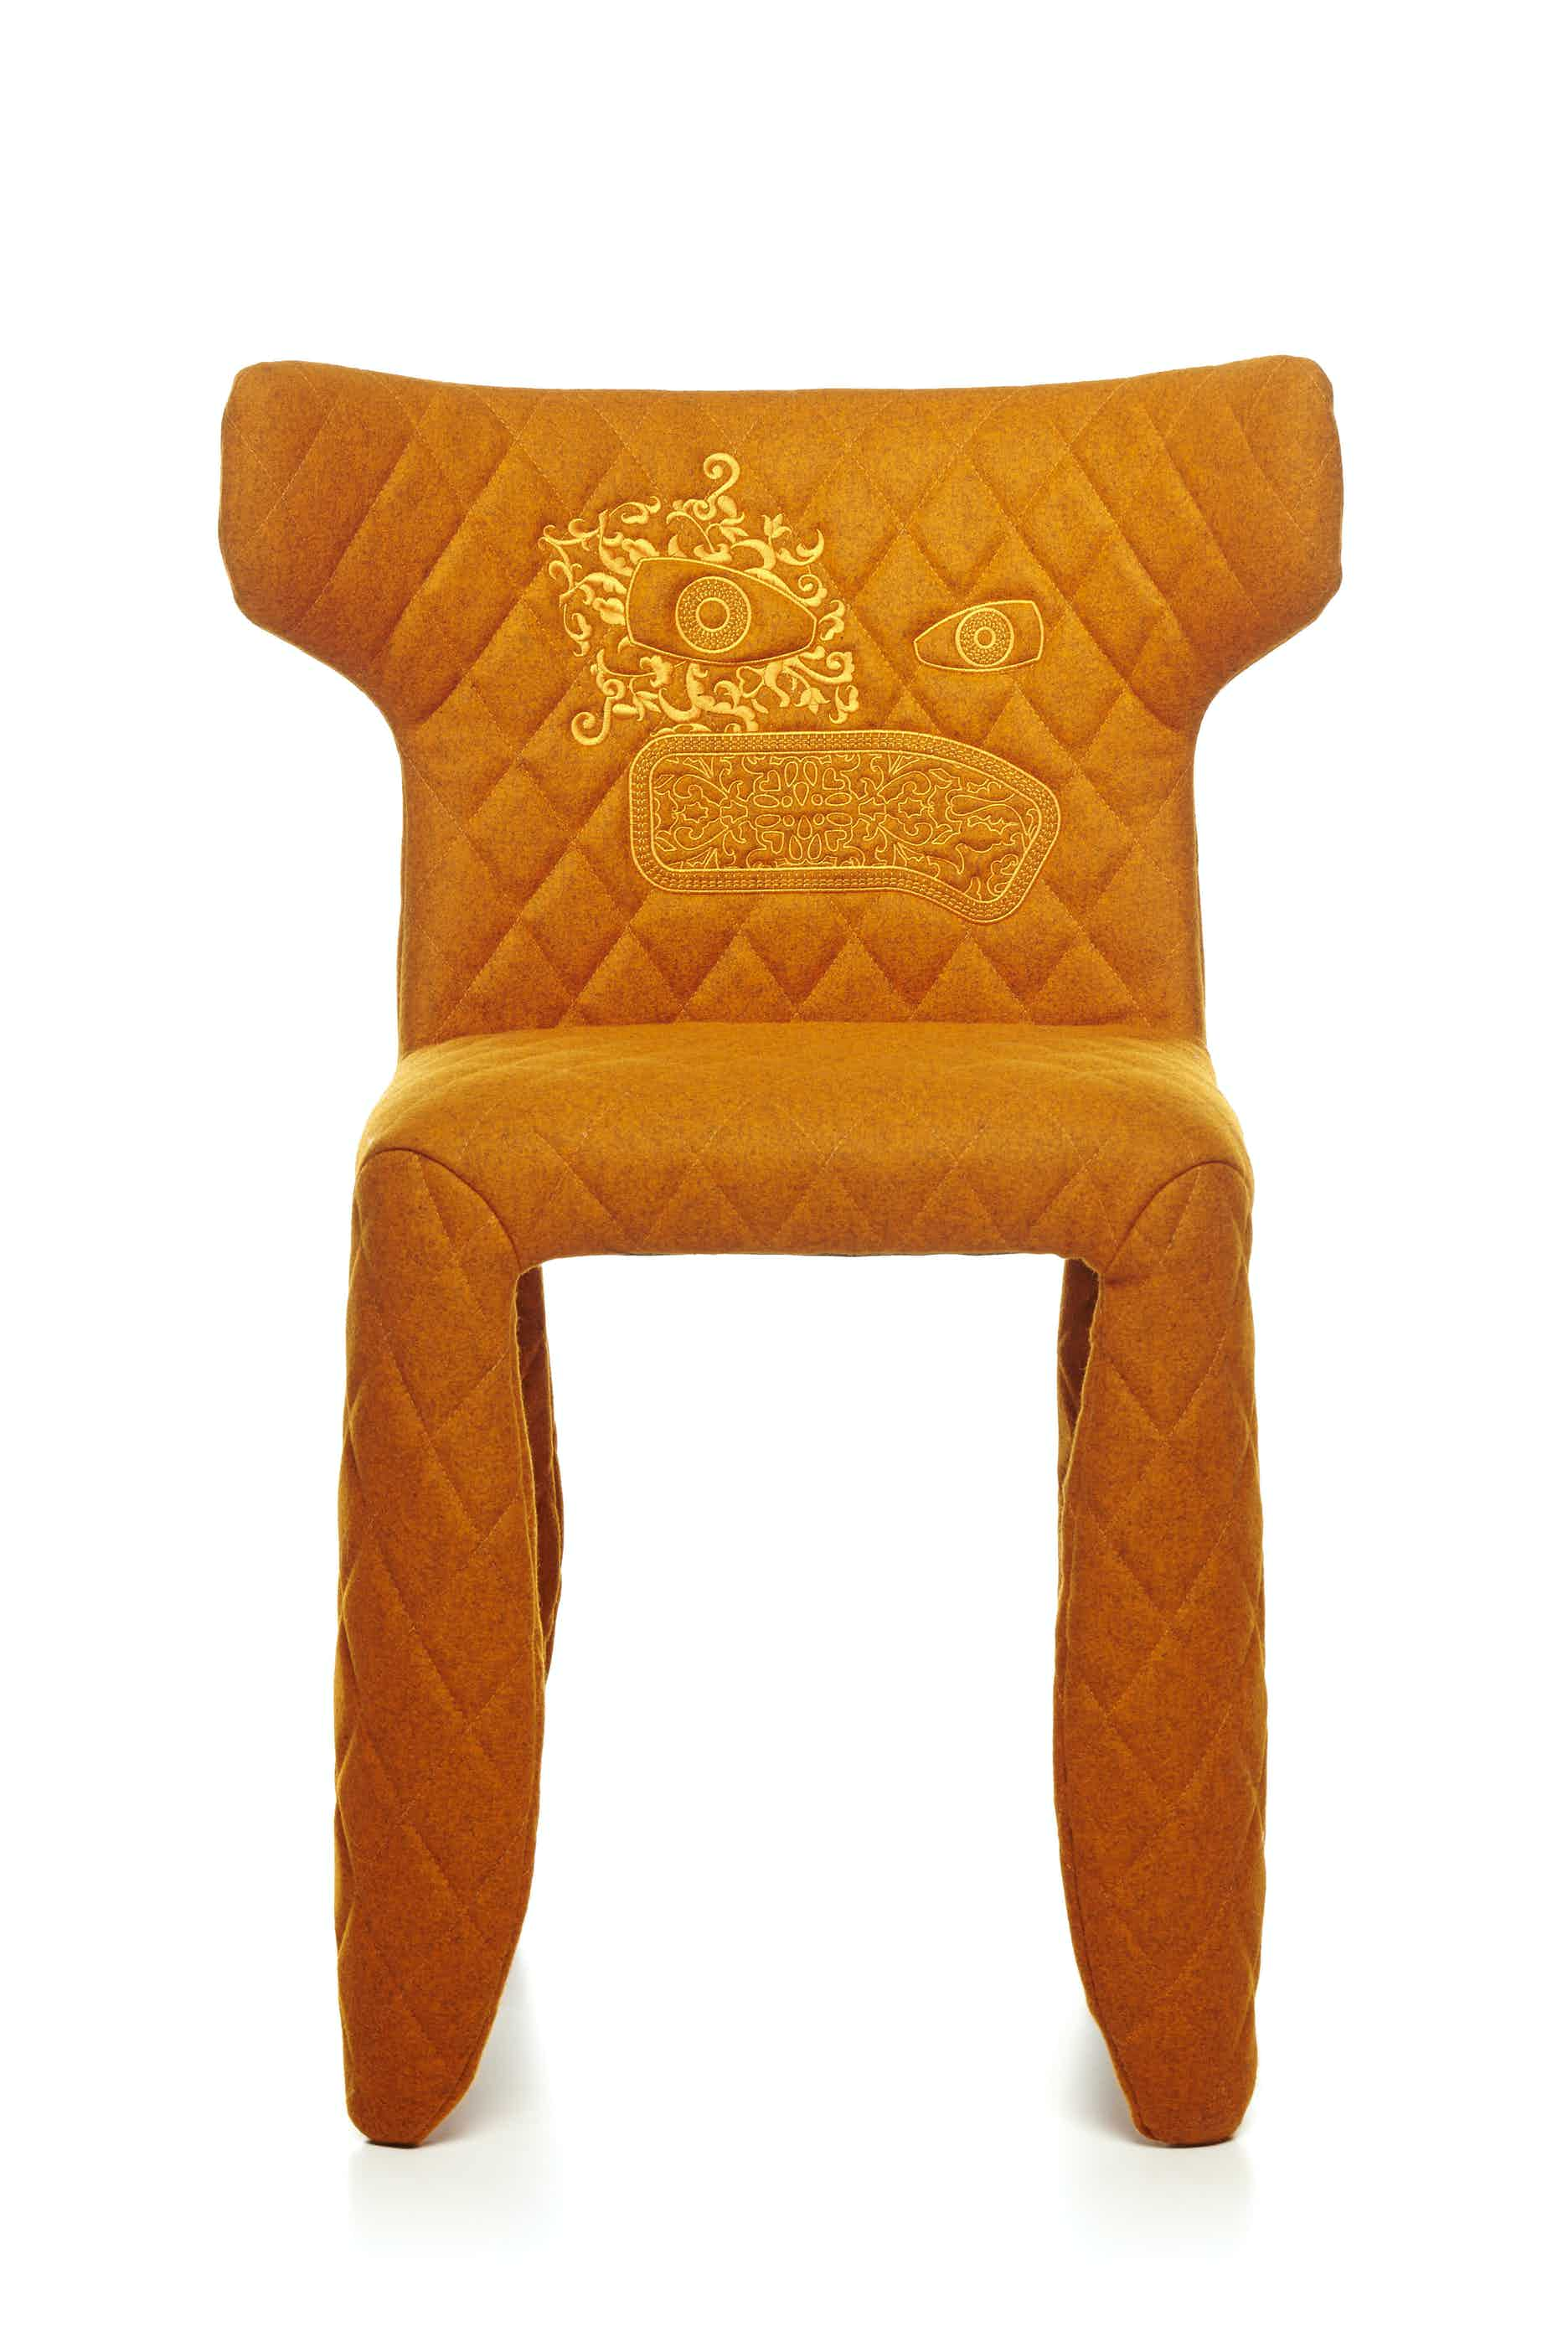 Monster Chair Divina 521 By Marcel Wanders For Moooi 2 300Dpi Moooi